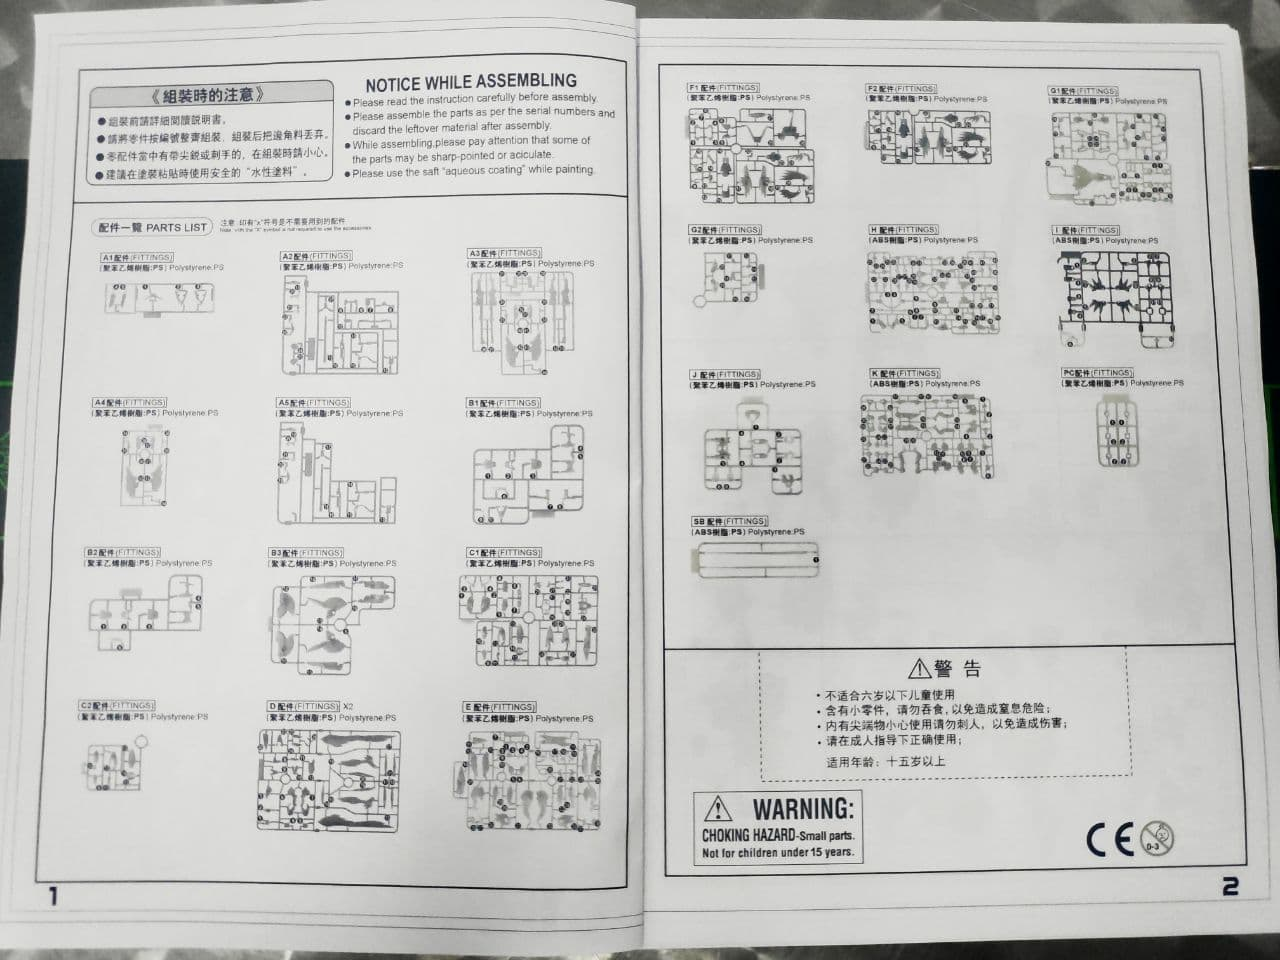 Instruction Manual Guide Printed Book for Any Brand Size A4/A5 [Daban/Supernova/Bandai/Others] (SMN Hobby Shop)